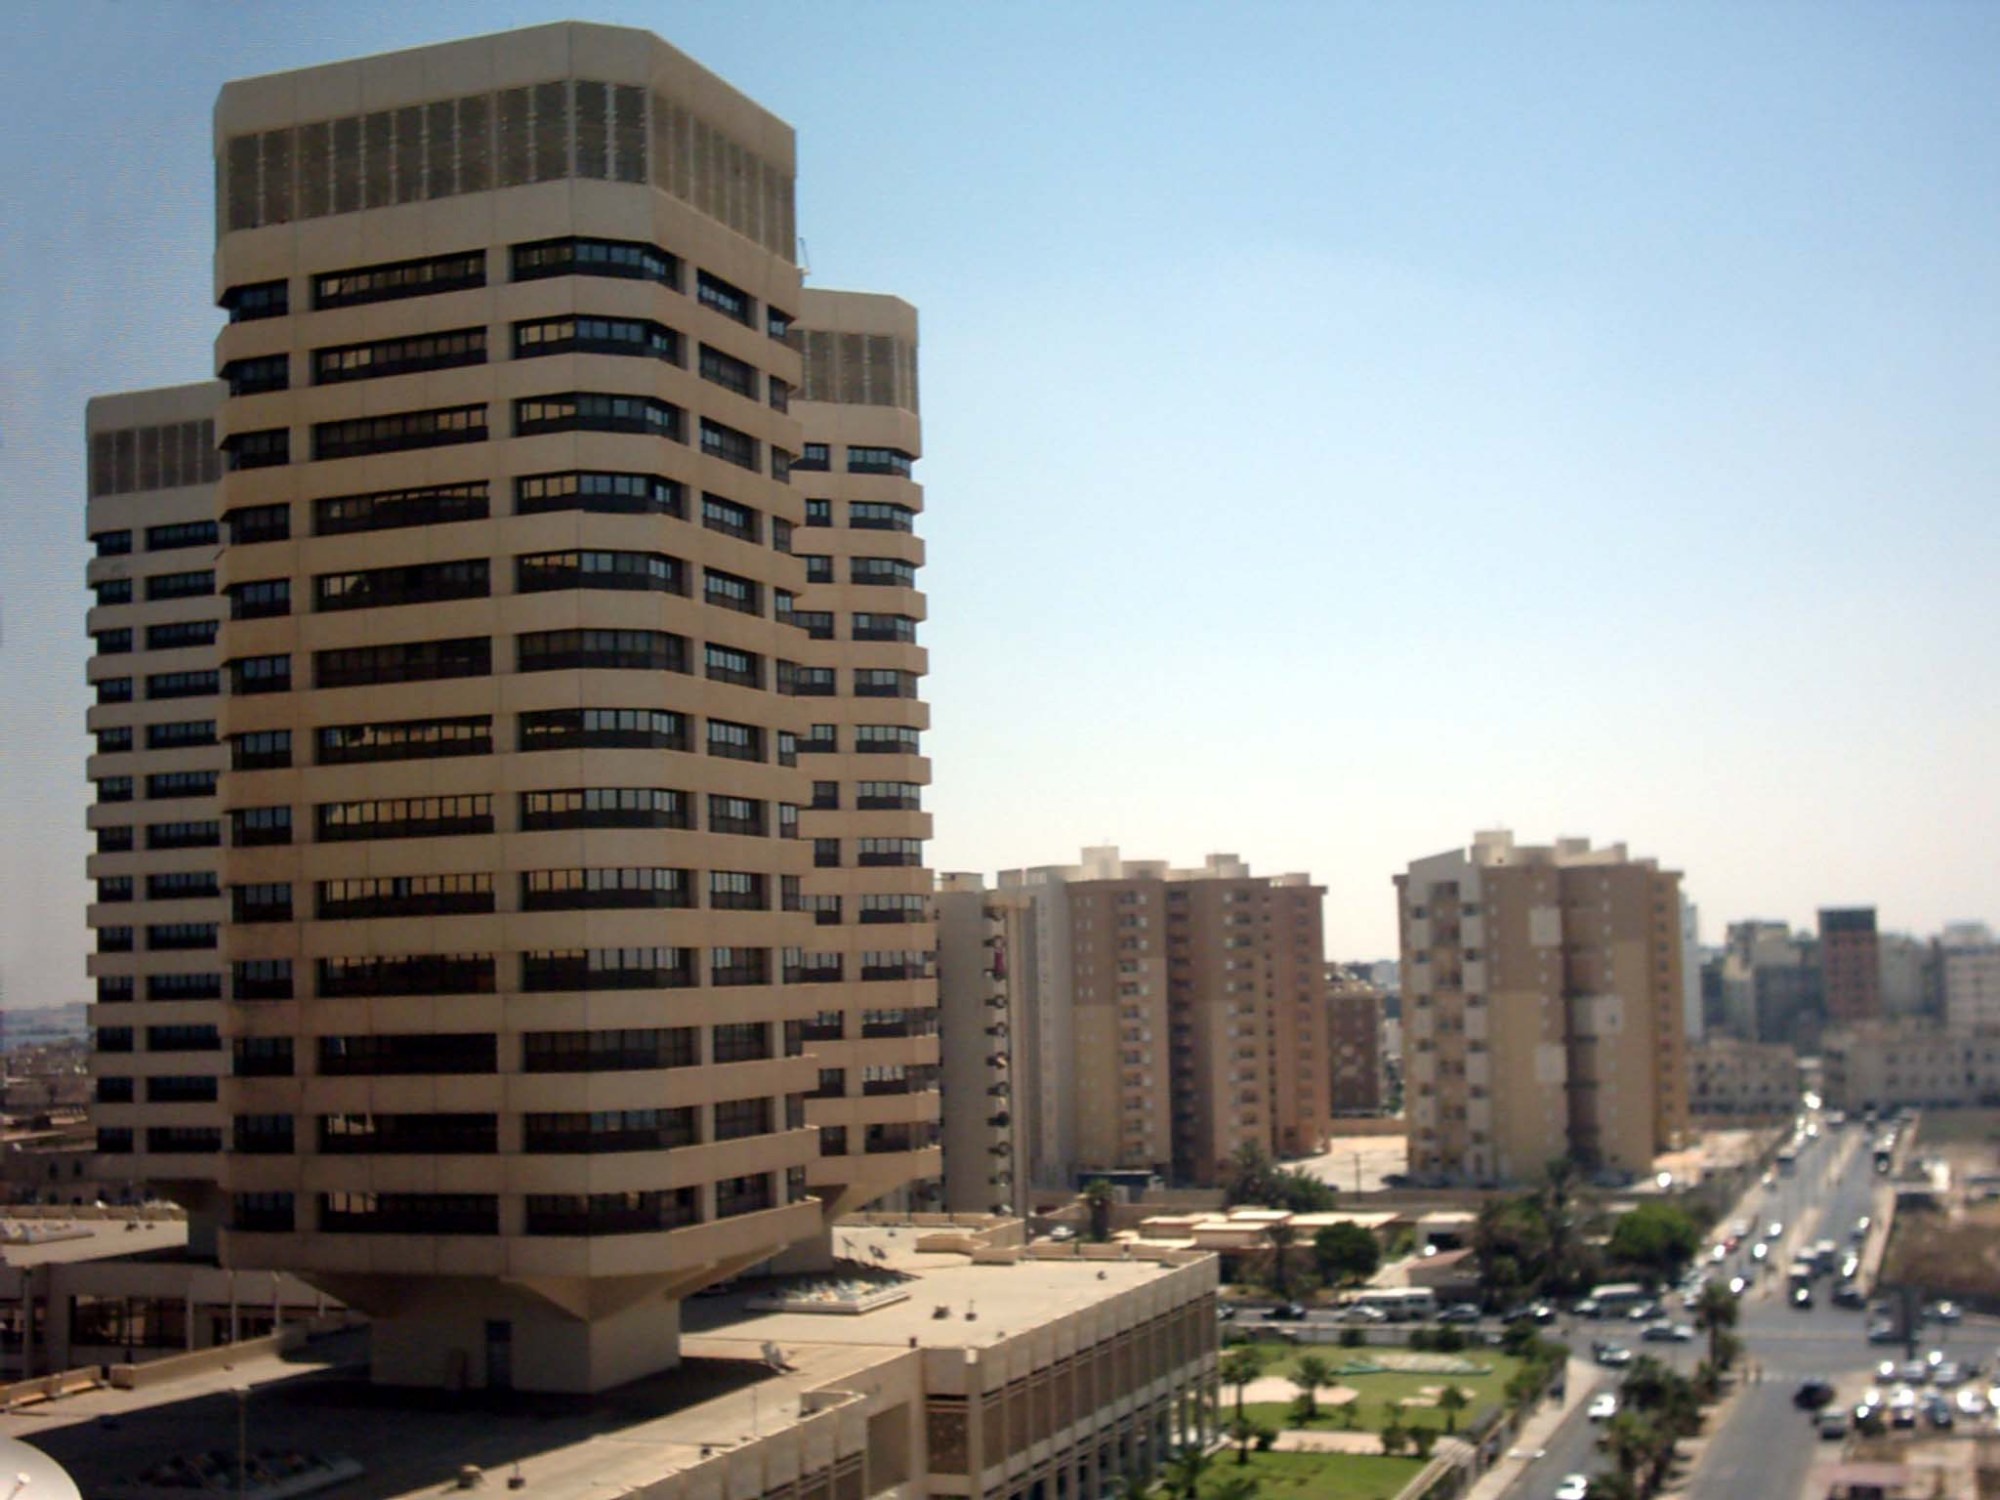 hight resolution of the that el emad towers built by daewoo corporations construction div in tripoli libya